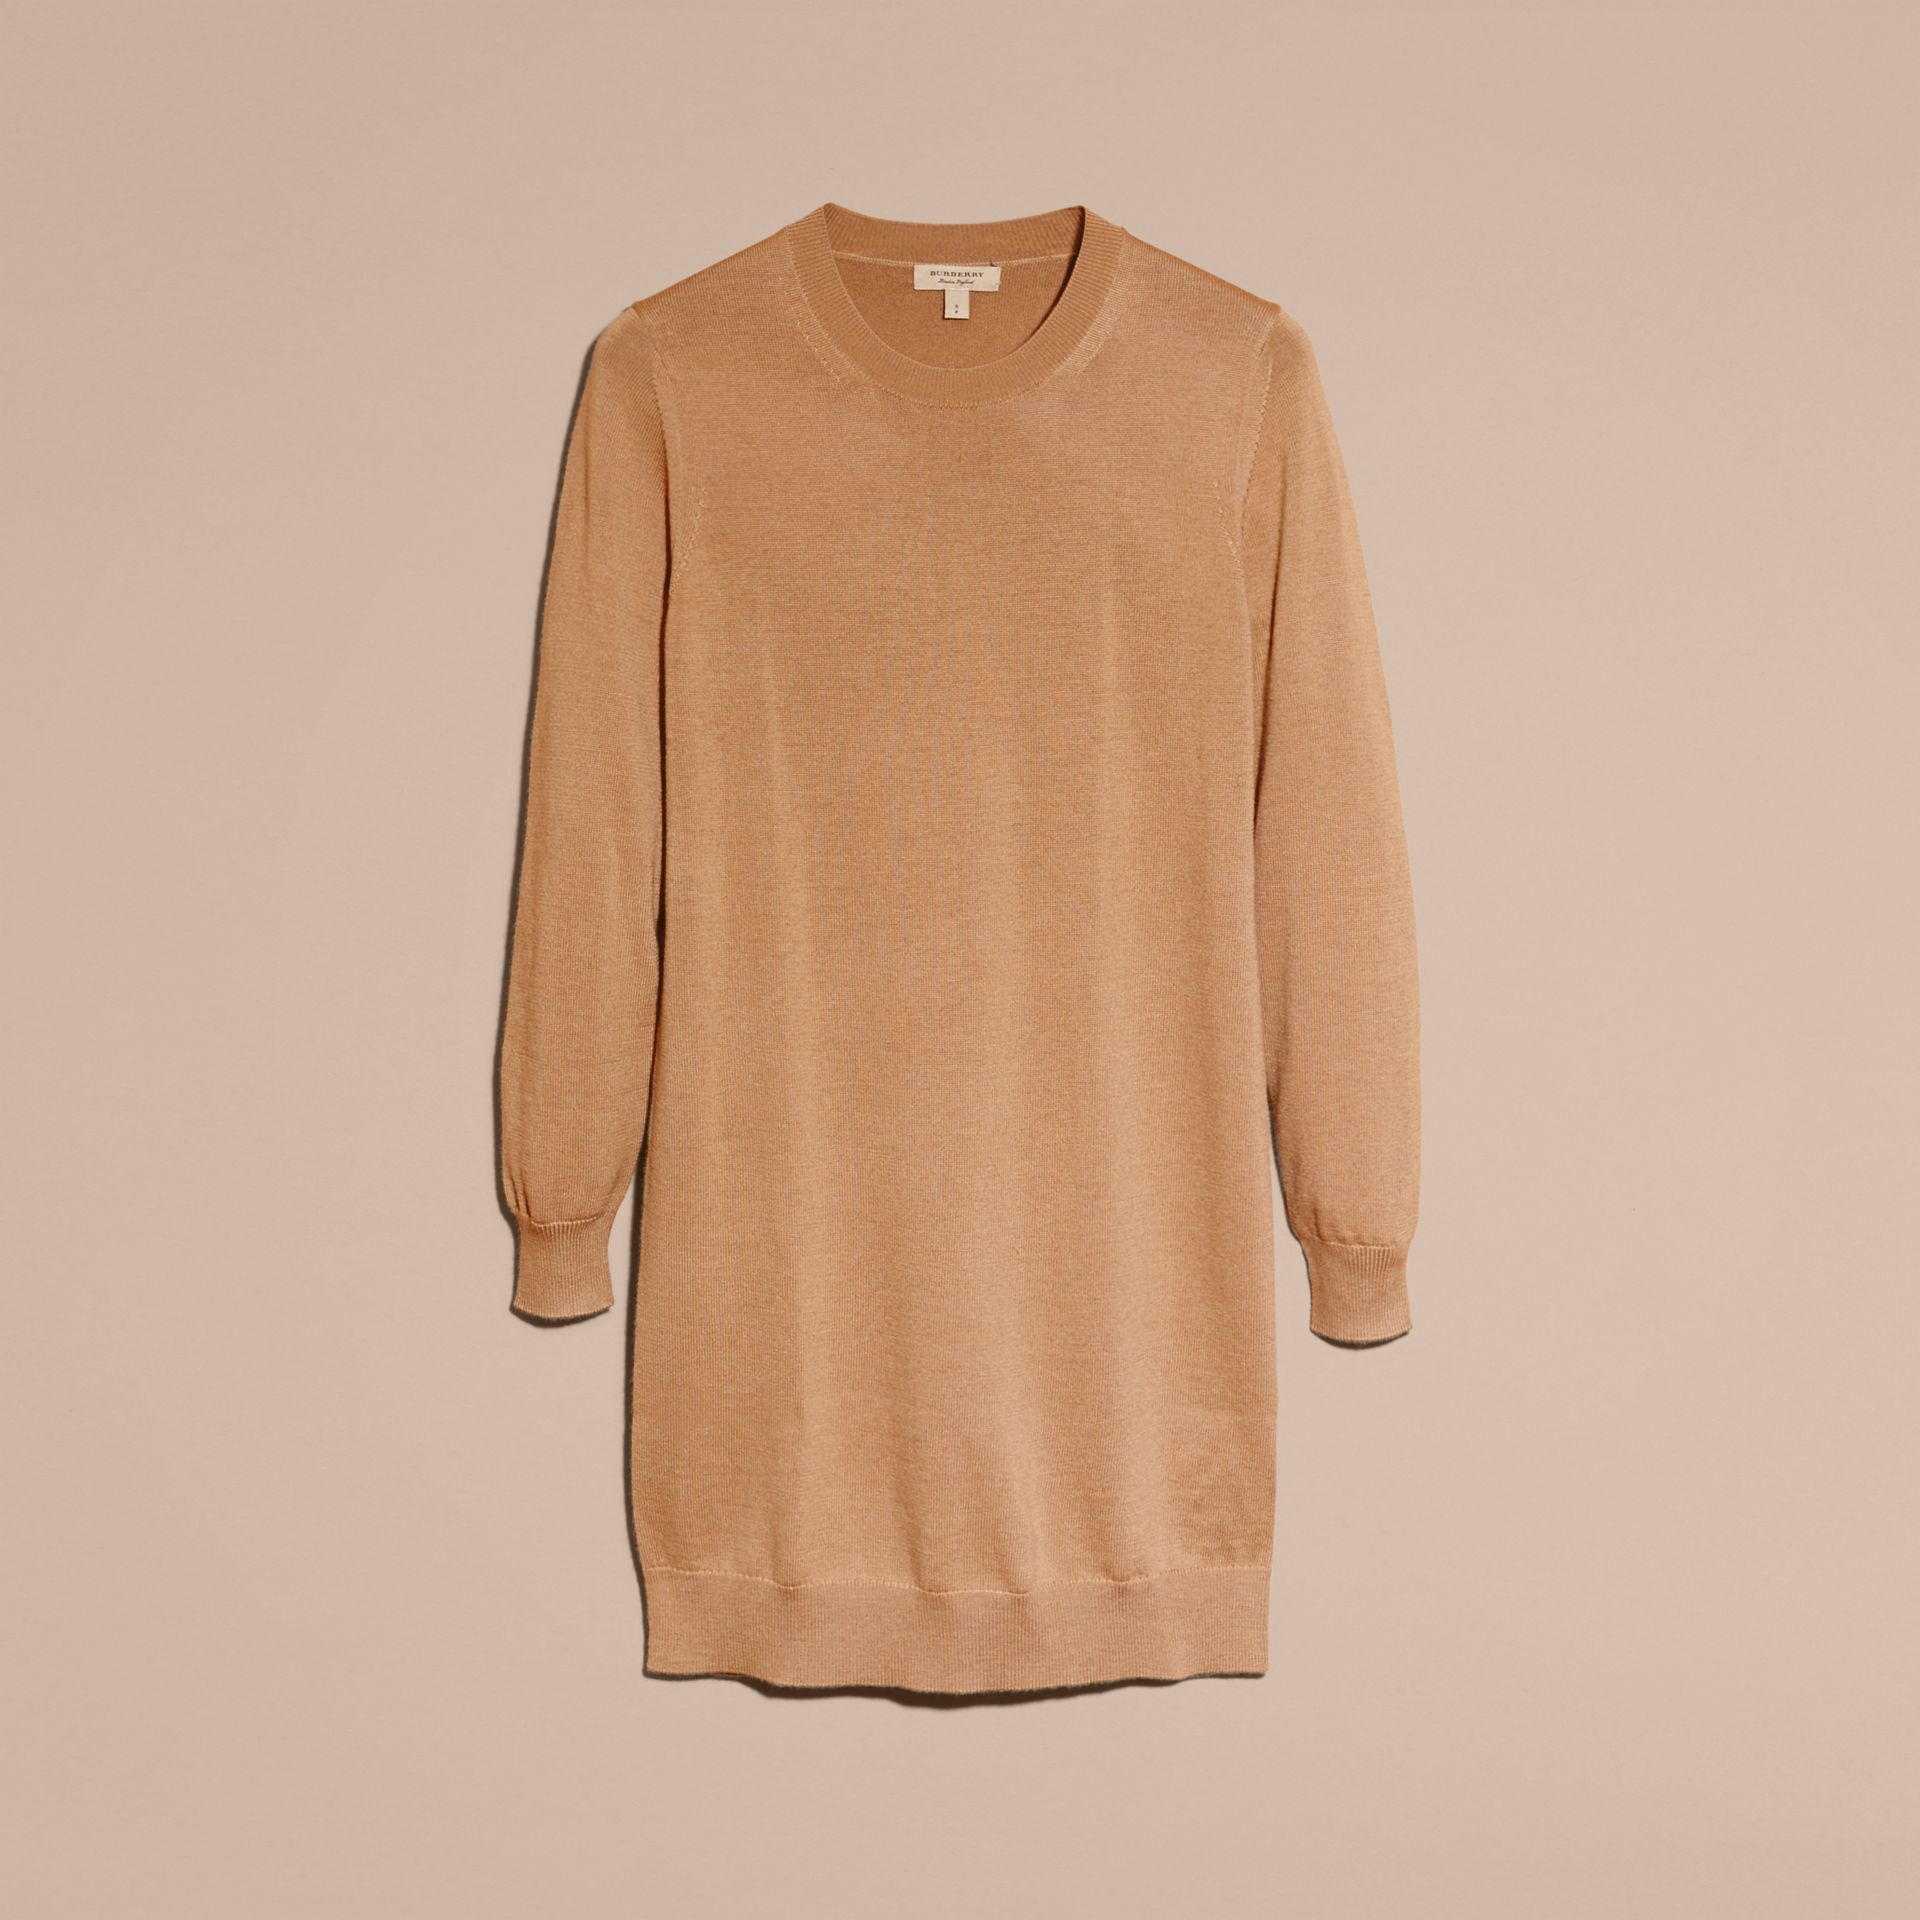 Check Elbow Detail Merino Wool Sweater Dress in Camel - Women | Burberry - gallery image 4